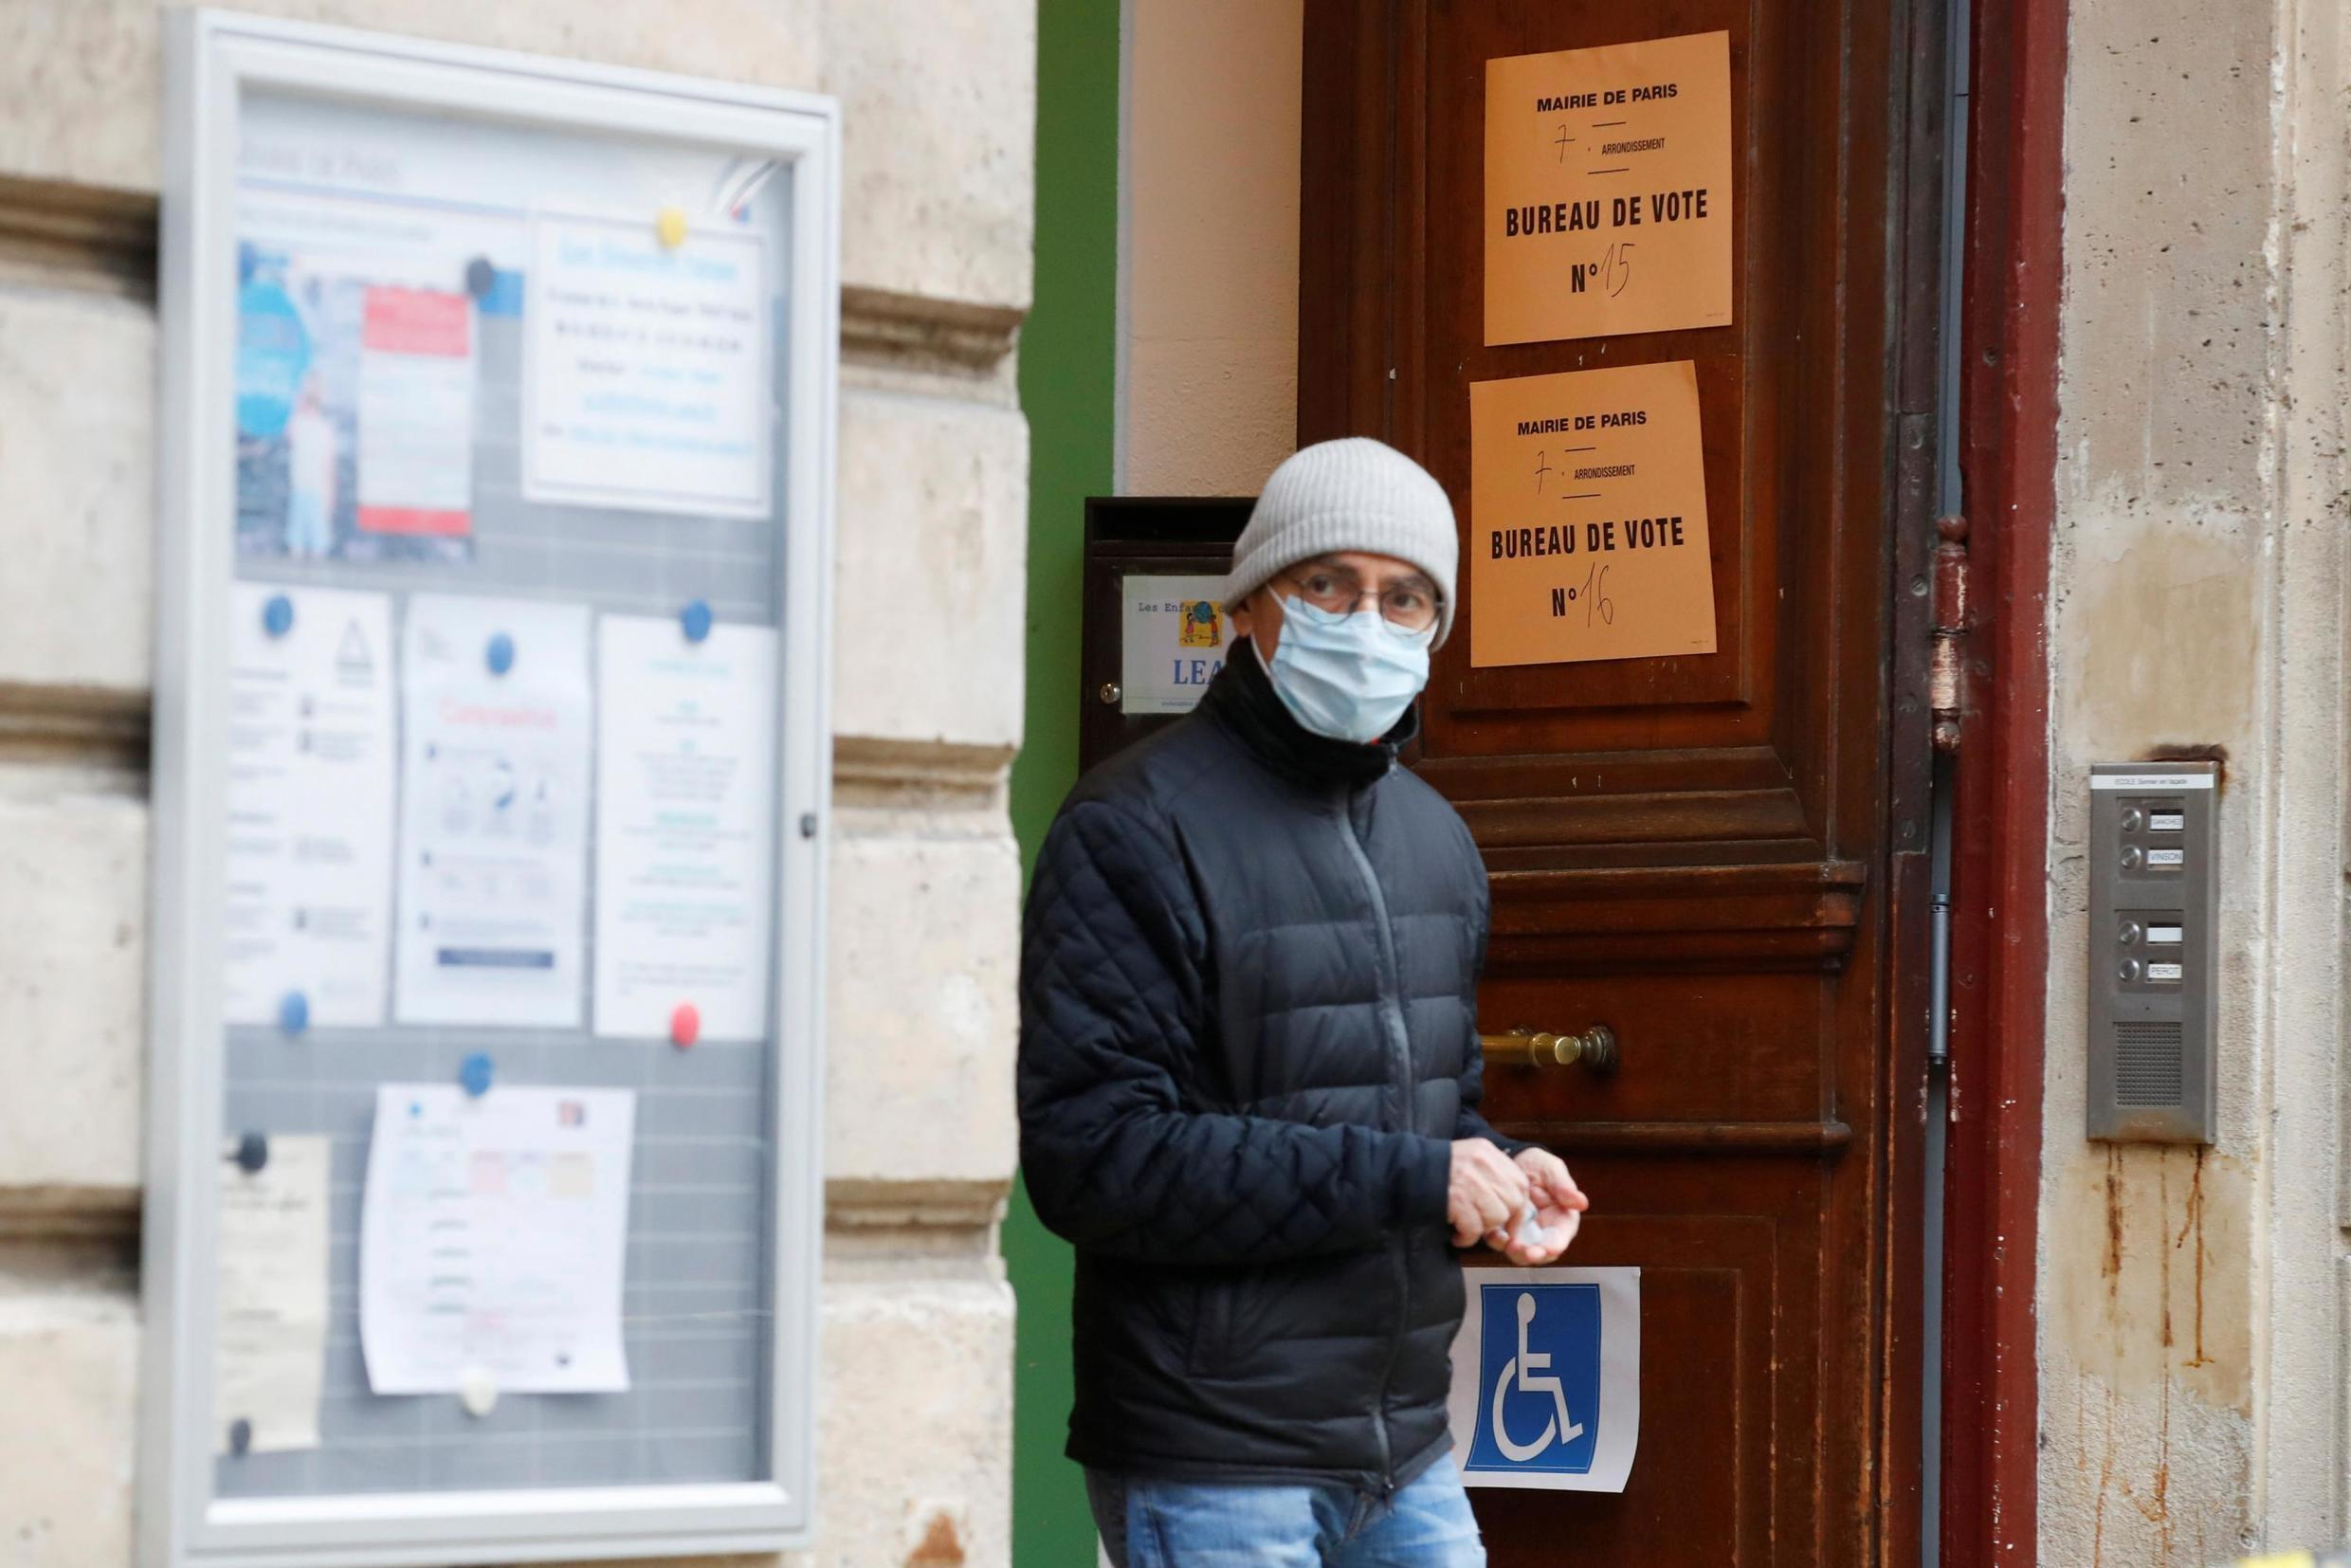 A man leaves a voting booth in Paris amid strict hygienic measures taken in the wake of the coronavirus epidemic